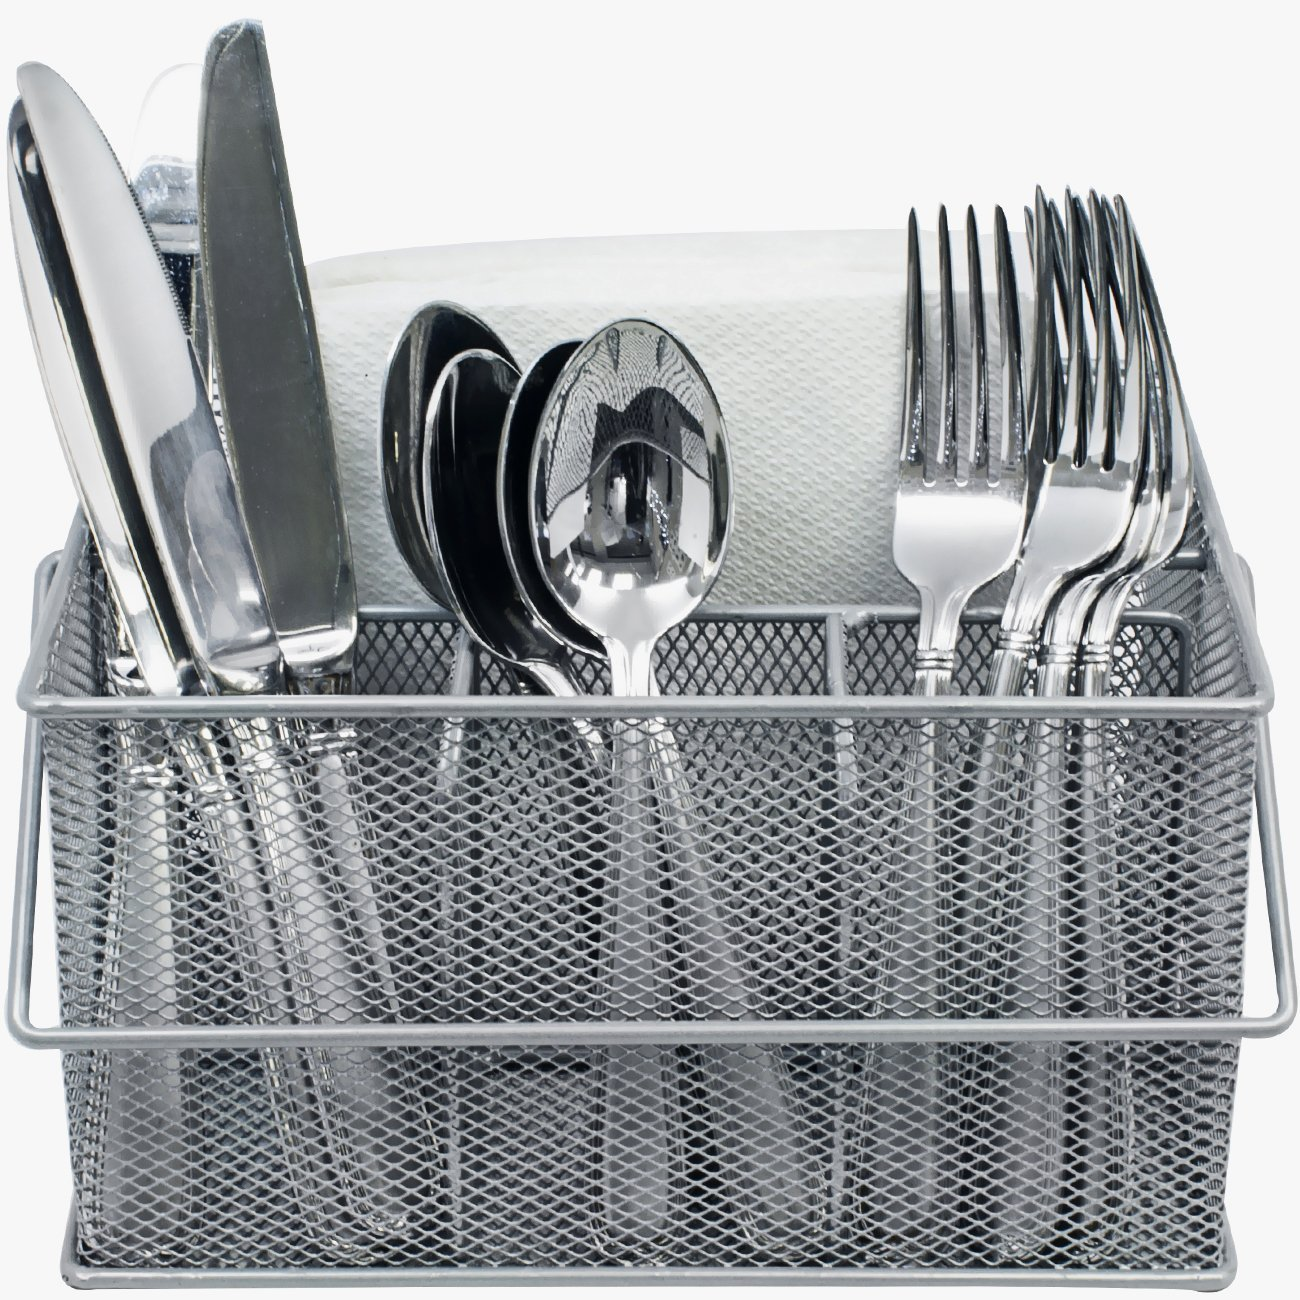 Utensil Caddy \u201aÄî Silverware Napkin Holder and Condiment Organizer \u201aÄî Multi-  sc 1 st  Walmart & Utensil Caddy \u201aÄî Silverware Napkin Holder and Condiment Organizer ...